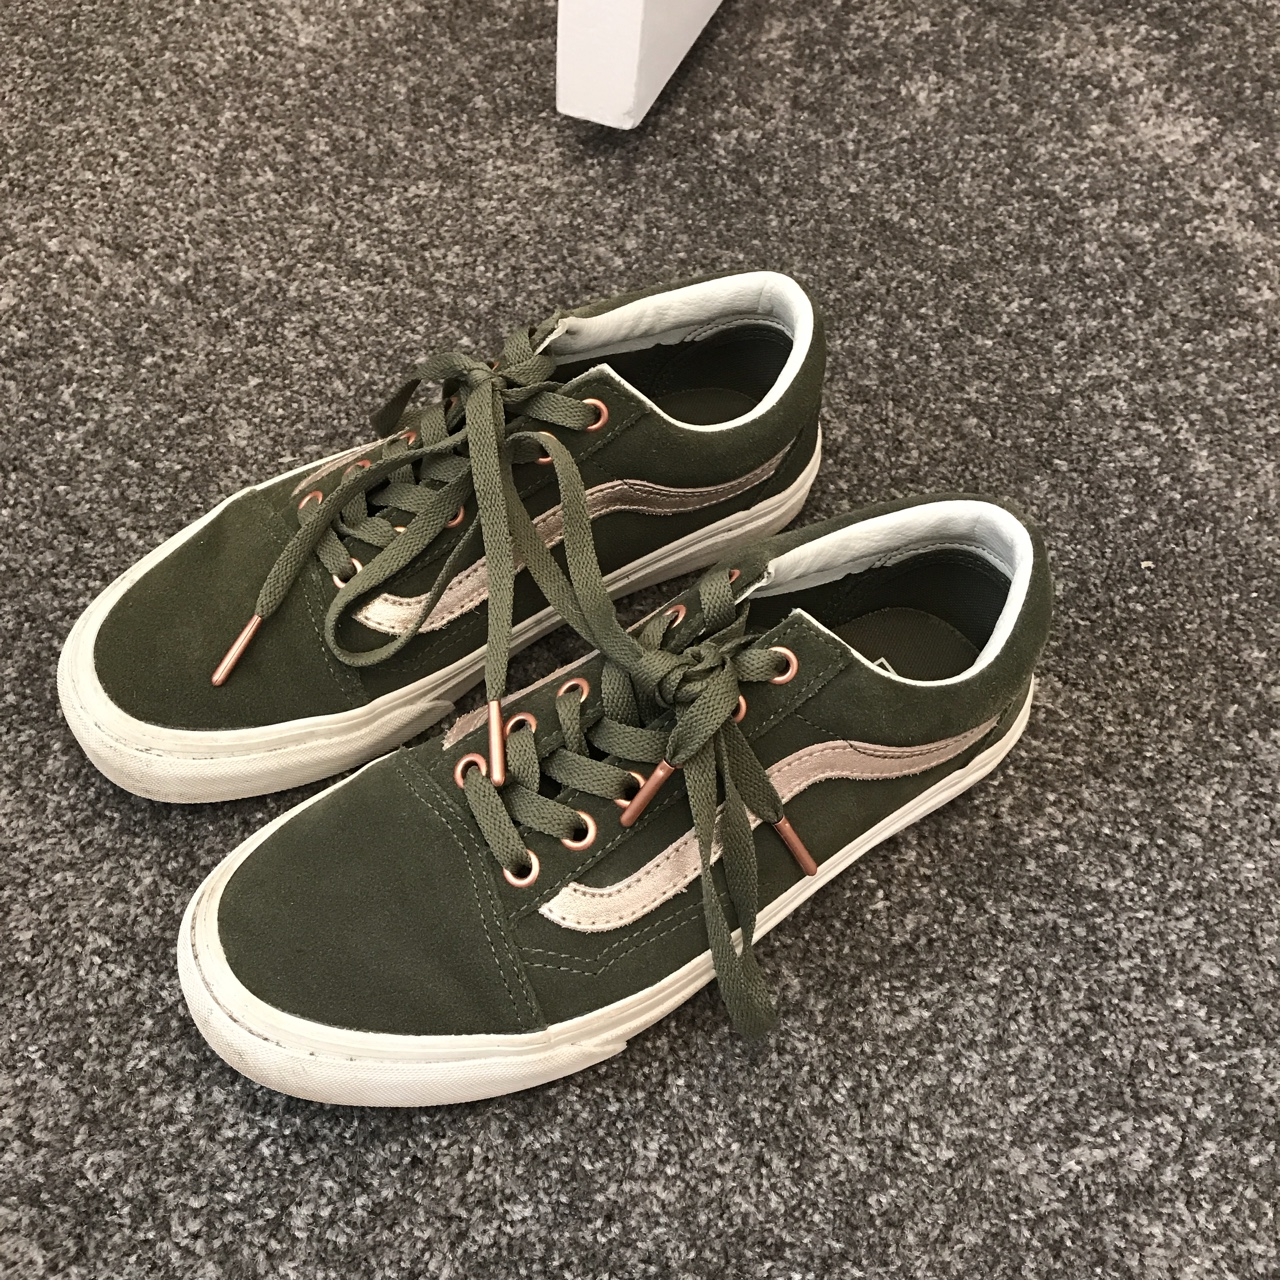 KHAKI AND ROSE GOLD VANS Only worn a